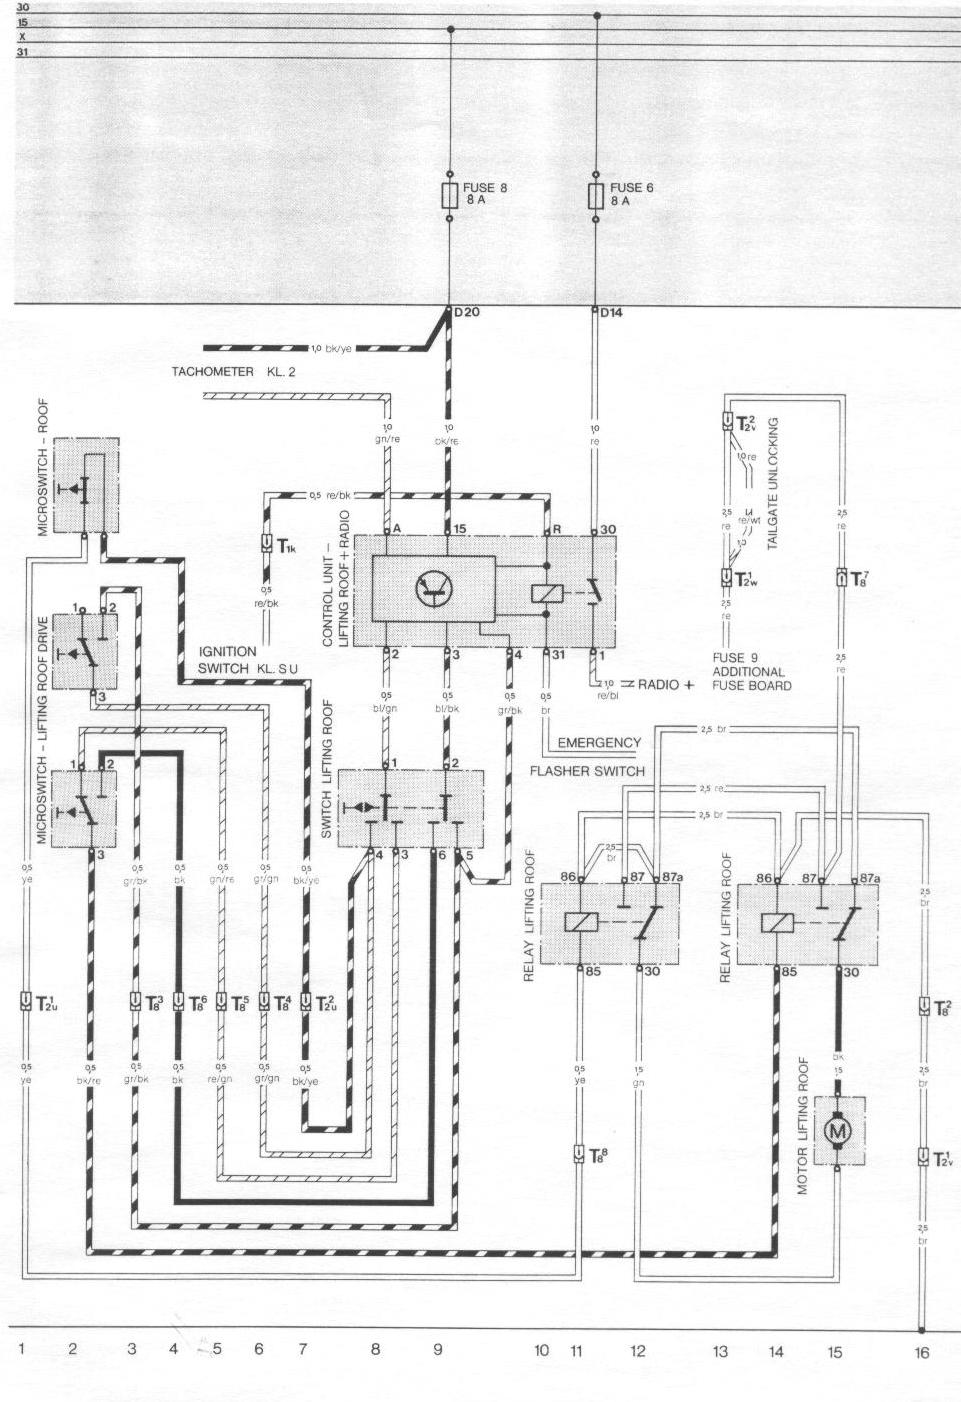 pelican parts porsche 924 944 electrical diagrams rh pelicanparts com 1983 porsche  944 radio wiring diagram 1983 porsche 944 electrical diagram